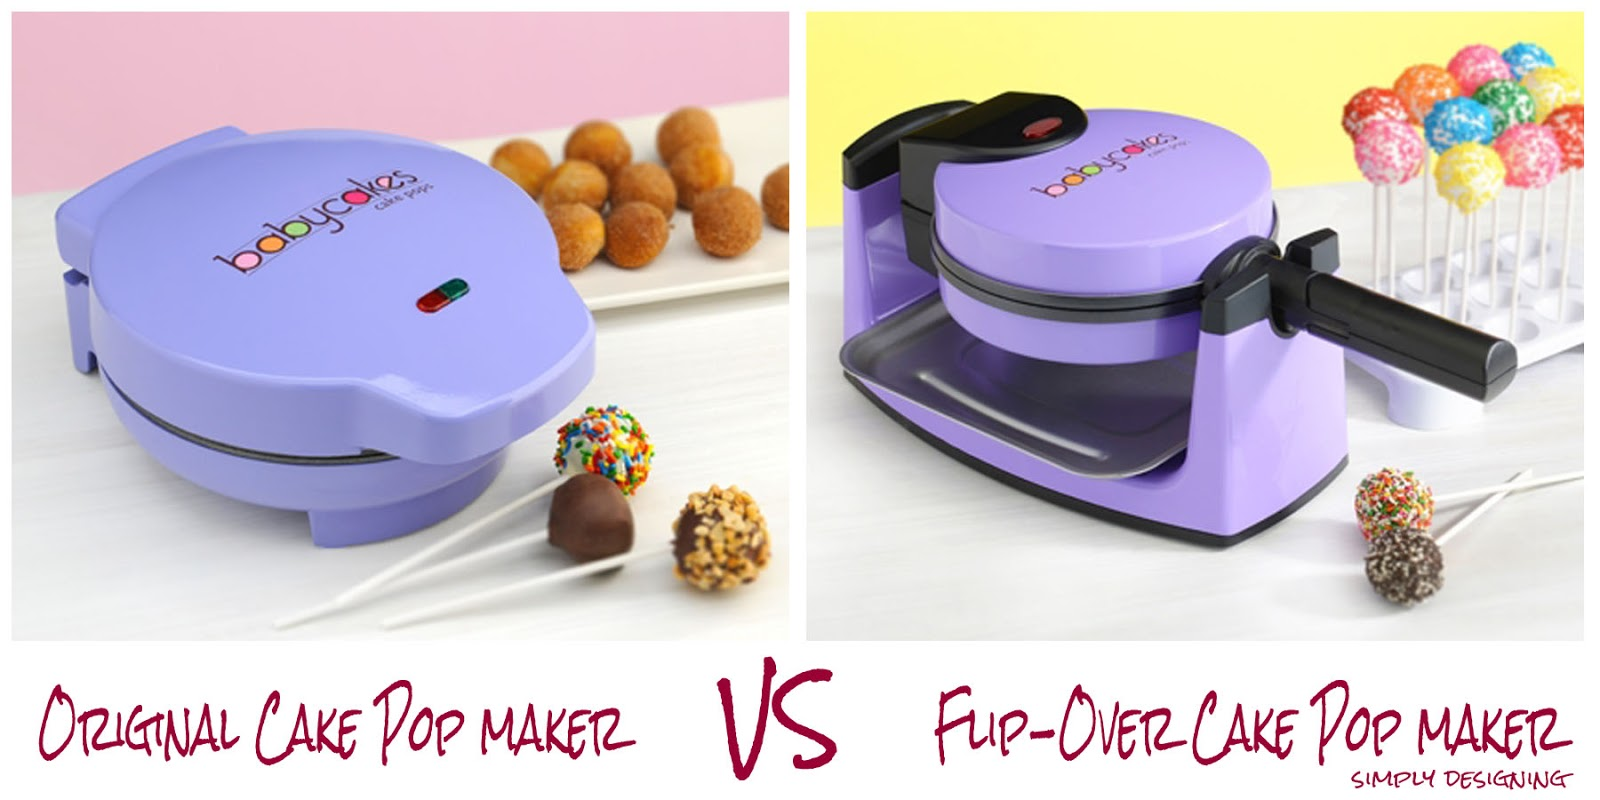 Flip Over Babycakes Cake Pop Maker Vs Original Cake Pop Maker